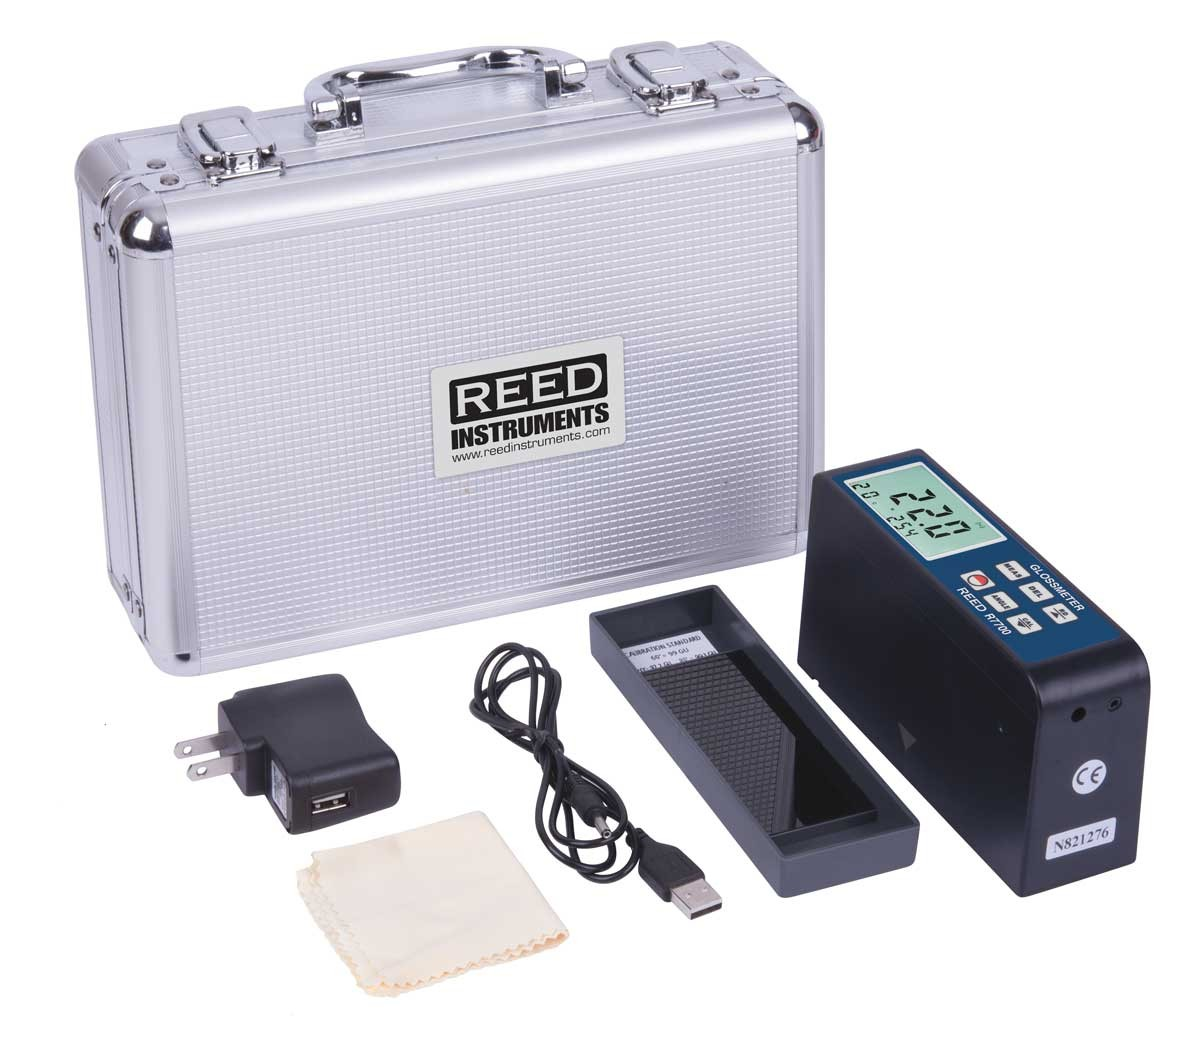 REED R7700 Gloss Meter-Included